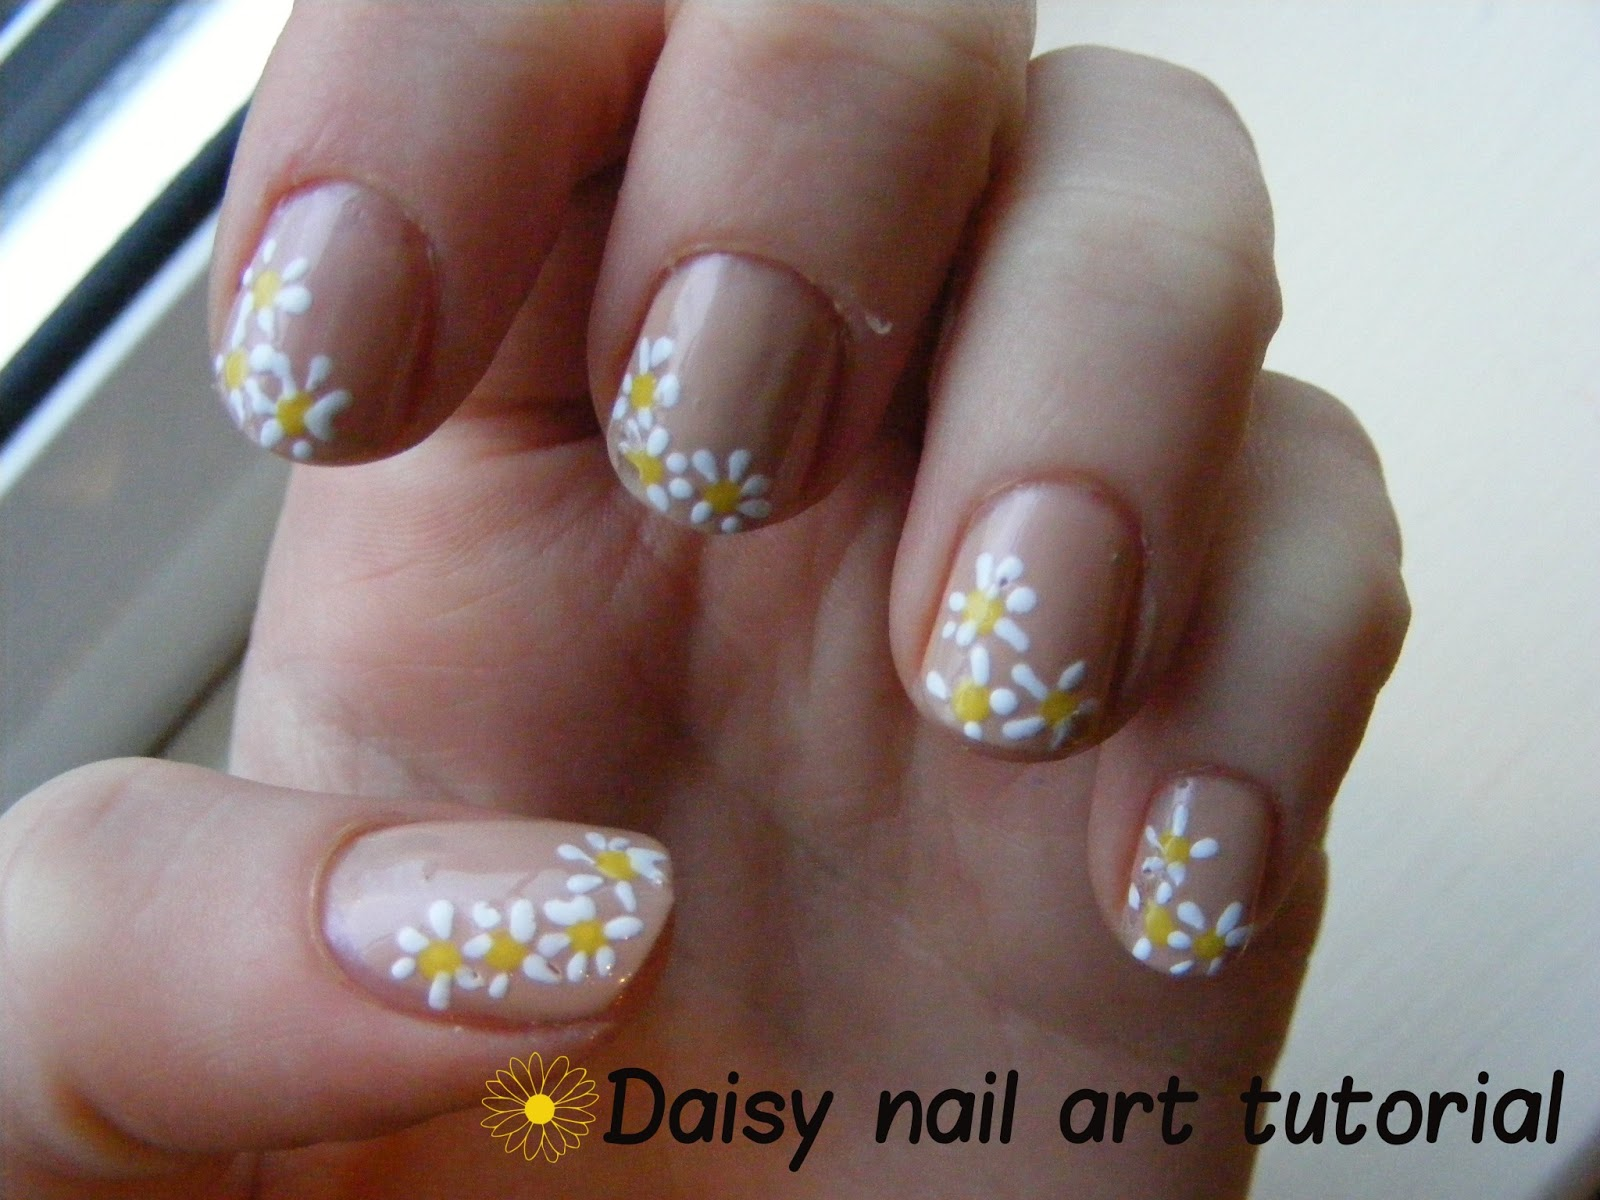 Daisy Nail Art Tutorial | oh hey there rachel